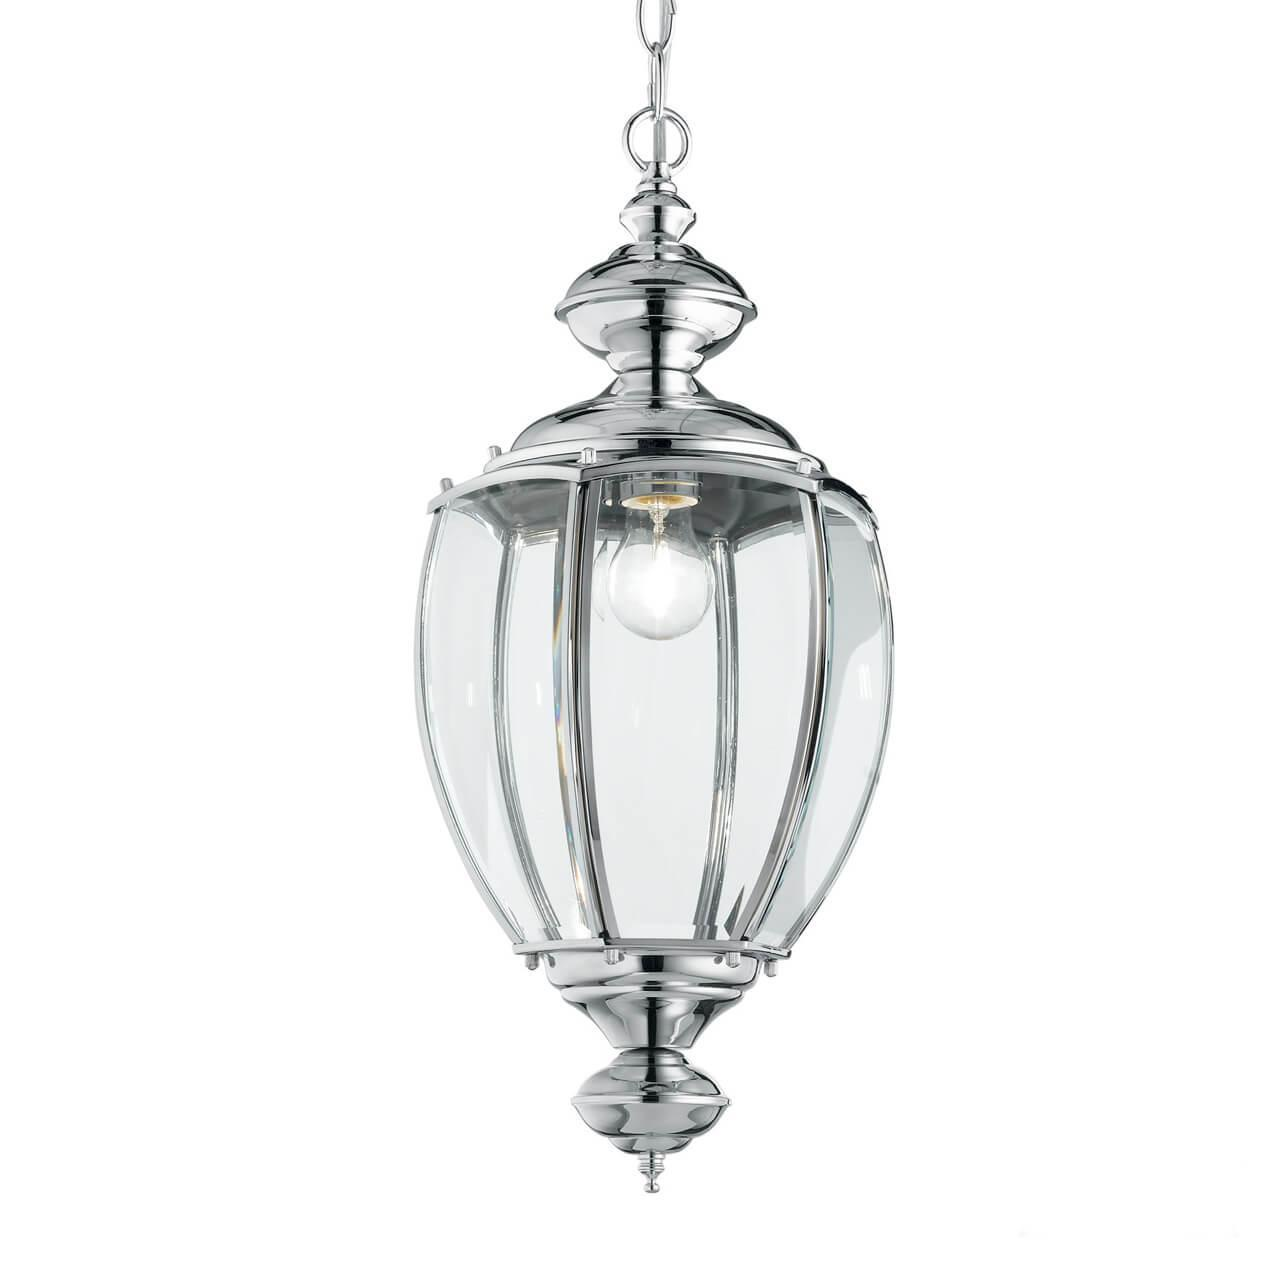 Подвесной светильник Ideal Lux Norma SP1 Cromo, E27, 60 Вт светильник ideal lux moby moby sp1 azzurro